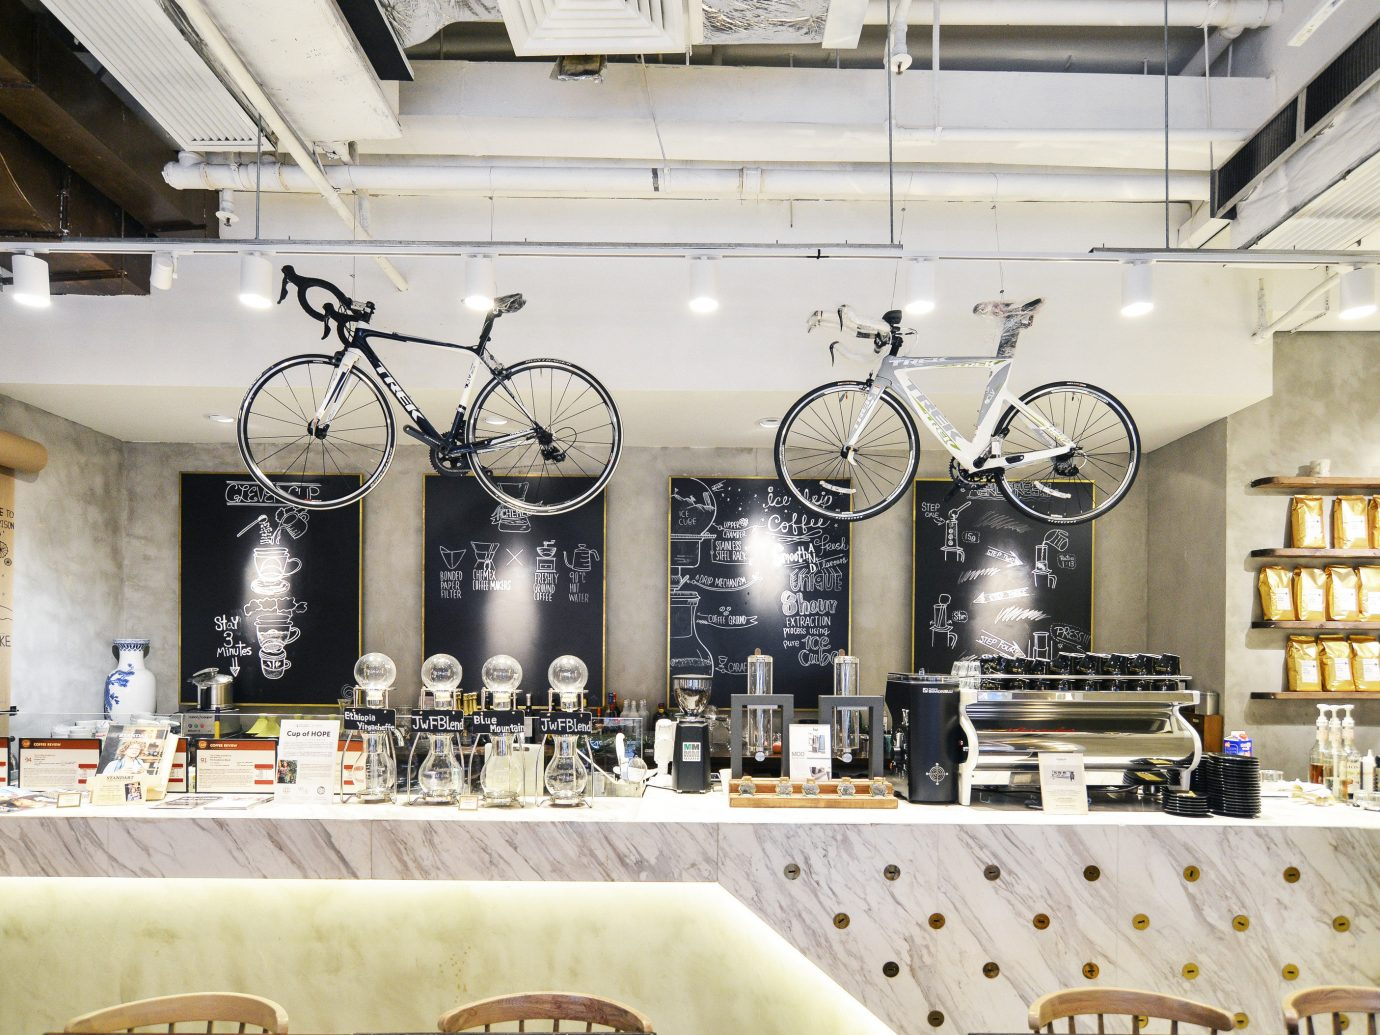 Food + Drink Offbeat Travel Trends indoor interior design restaurant ceiling